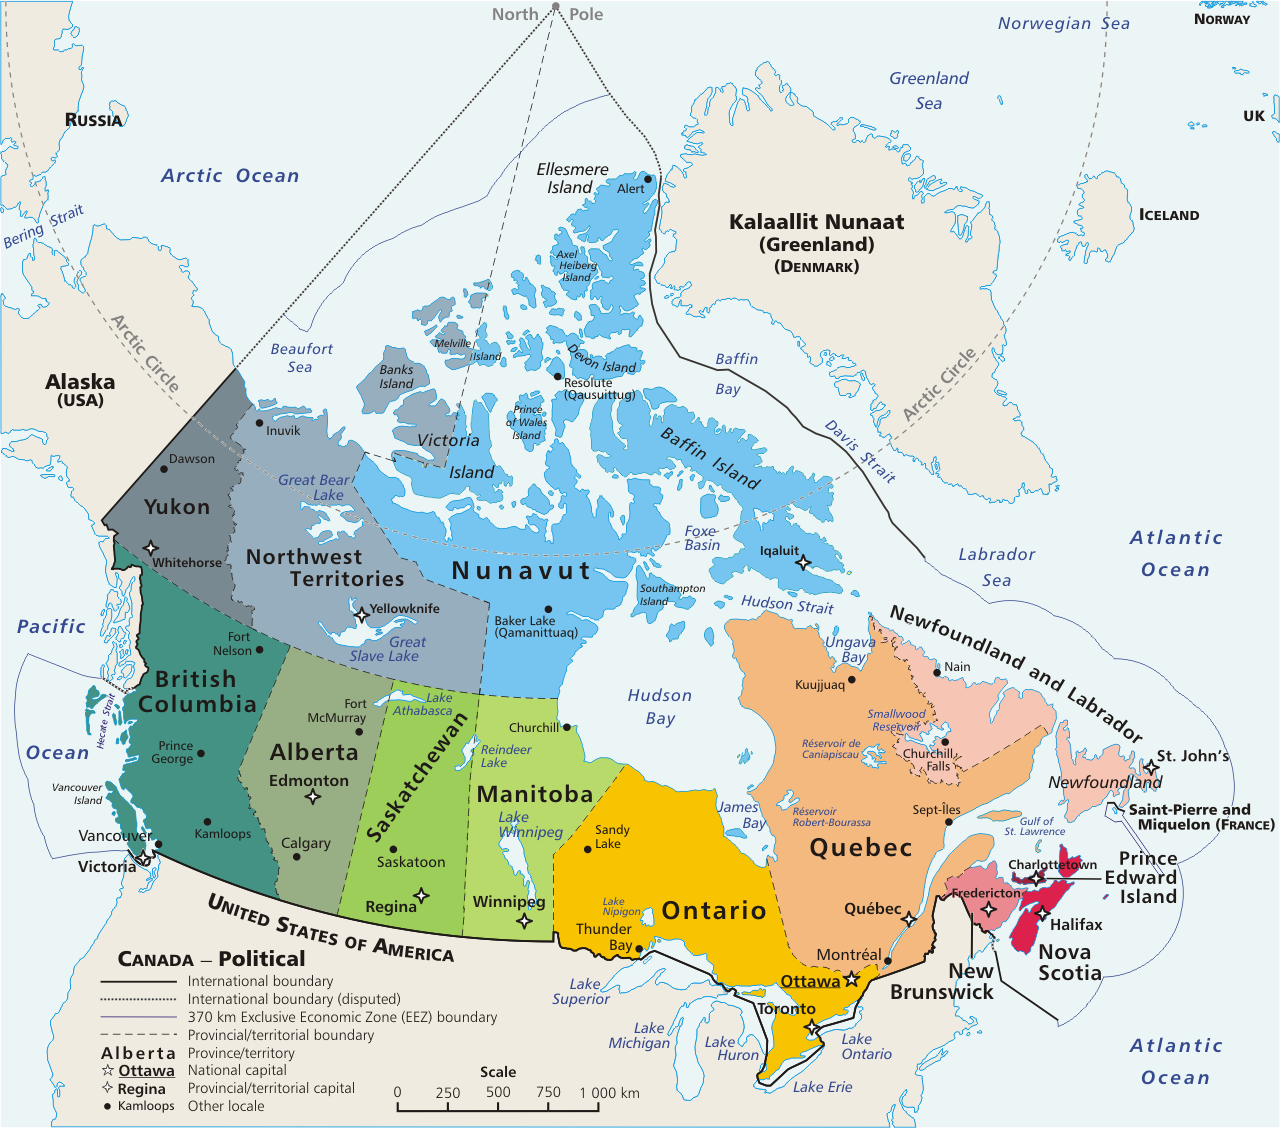 File:Map Canada political-geo.png - Wikipedia